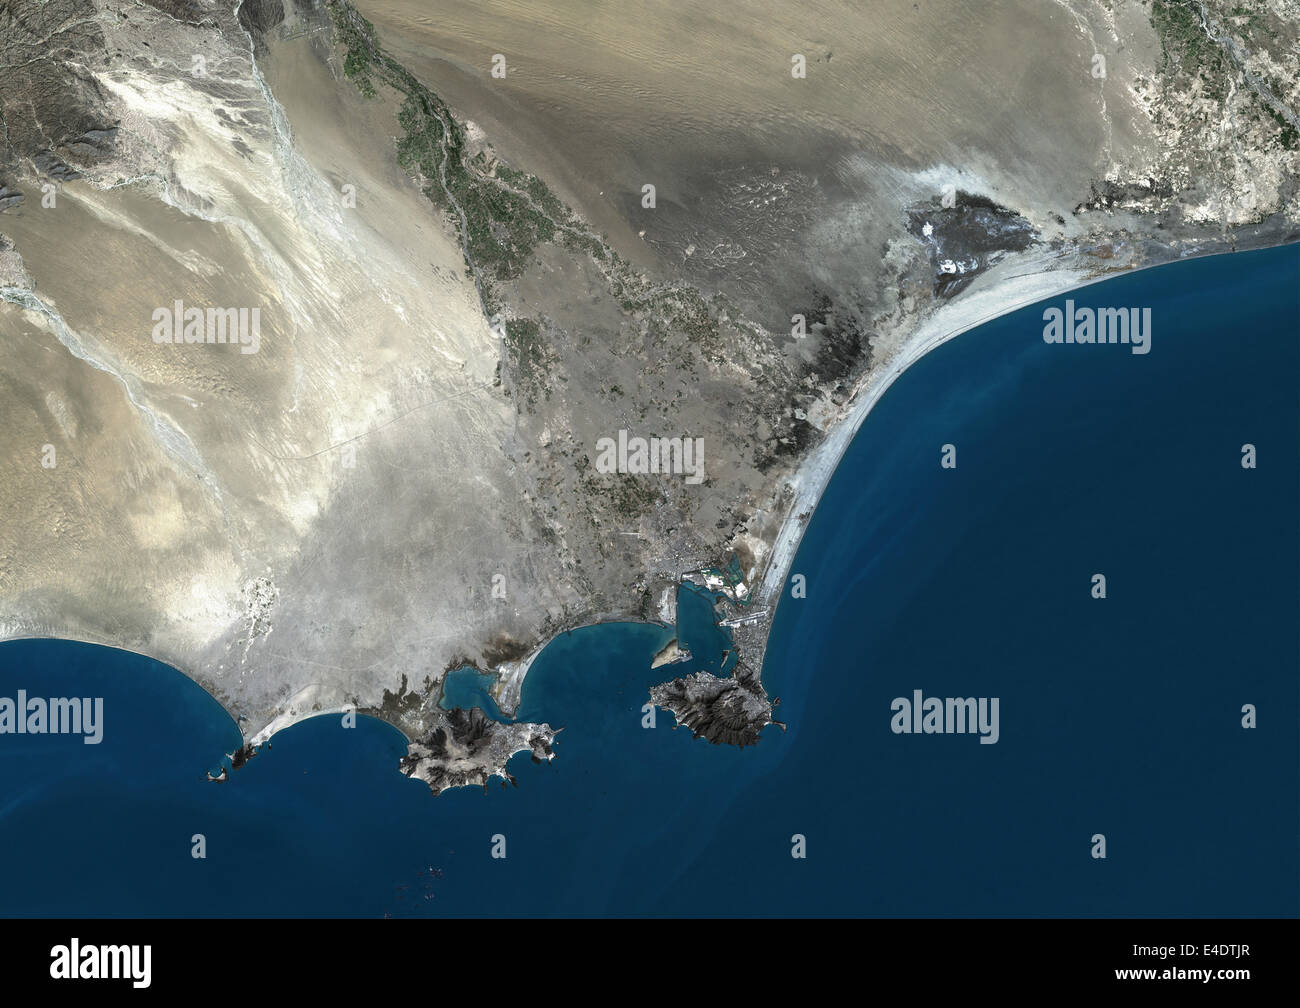 Gulf Of Aden Map Stock Photos & Gulf Of Aden Map Stock Images - Alamy